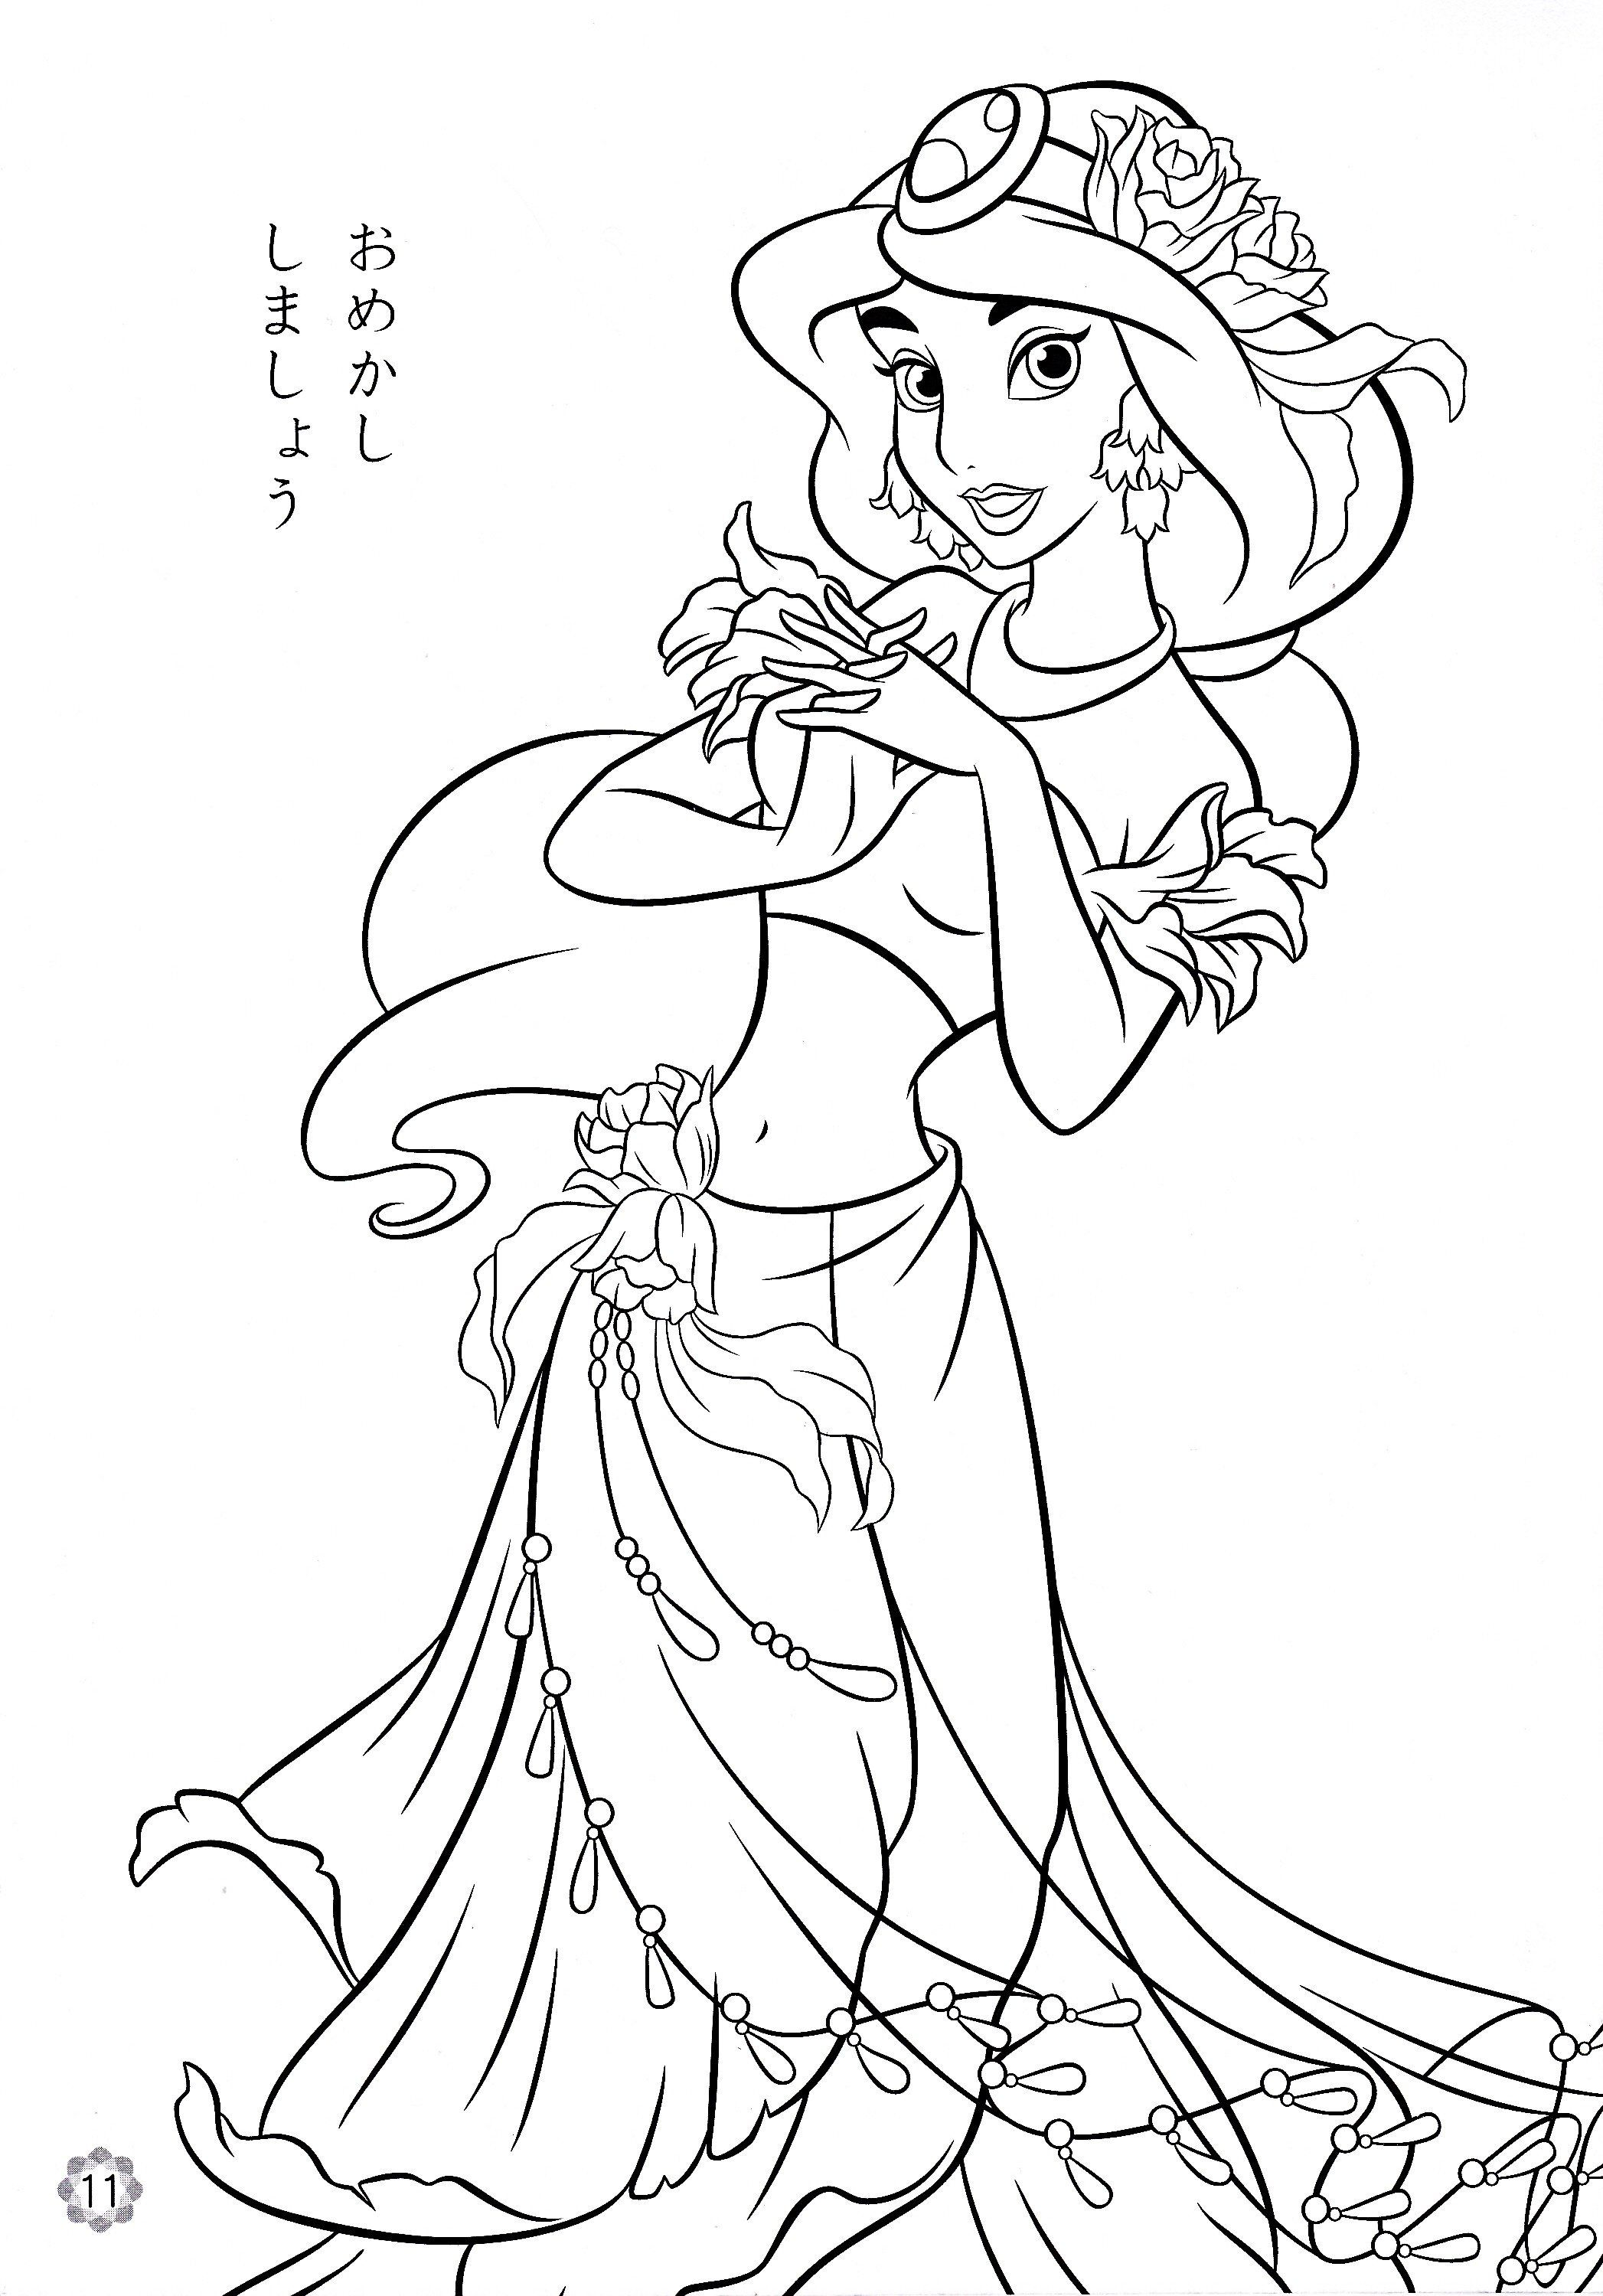 Princess Coloring Pages Online Inspirational Coloring Pages Pretty Princess Colori Disney Princess Coloring Pages Princess Coloring Pages Disney Coloring Pages